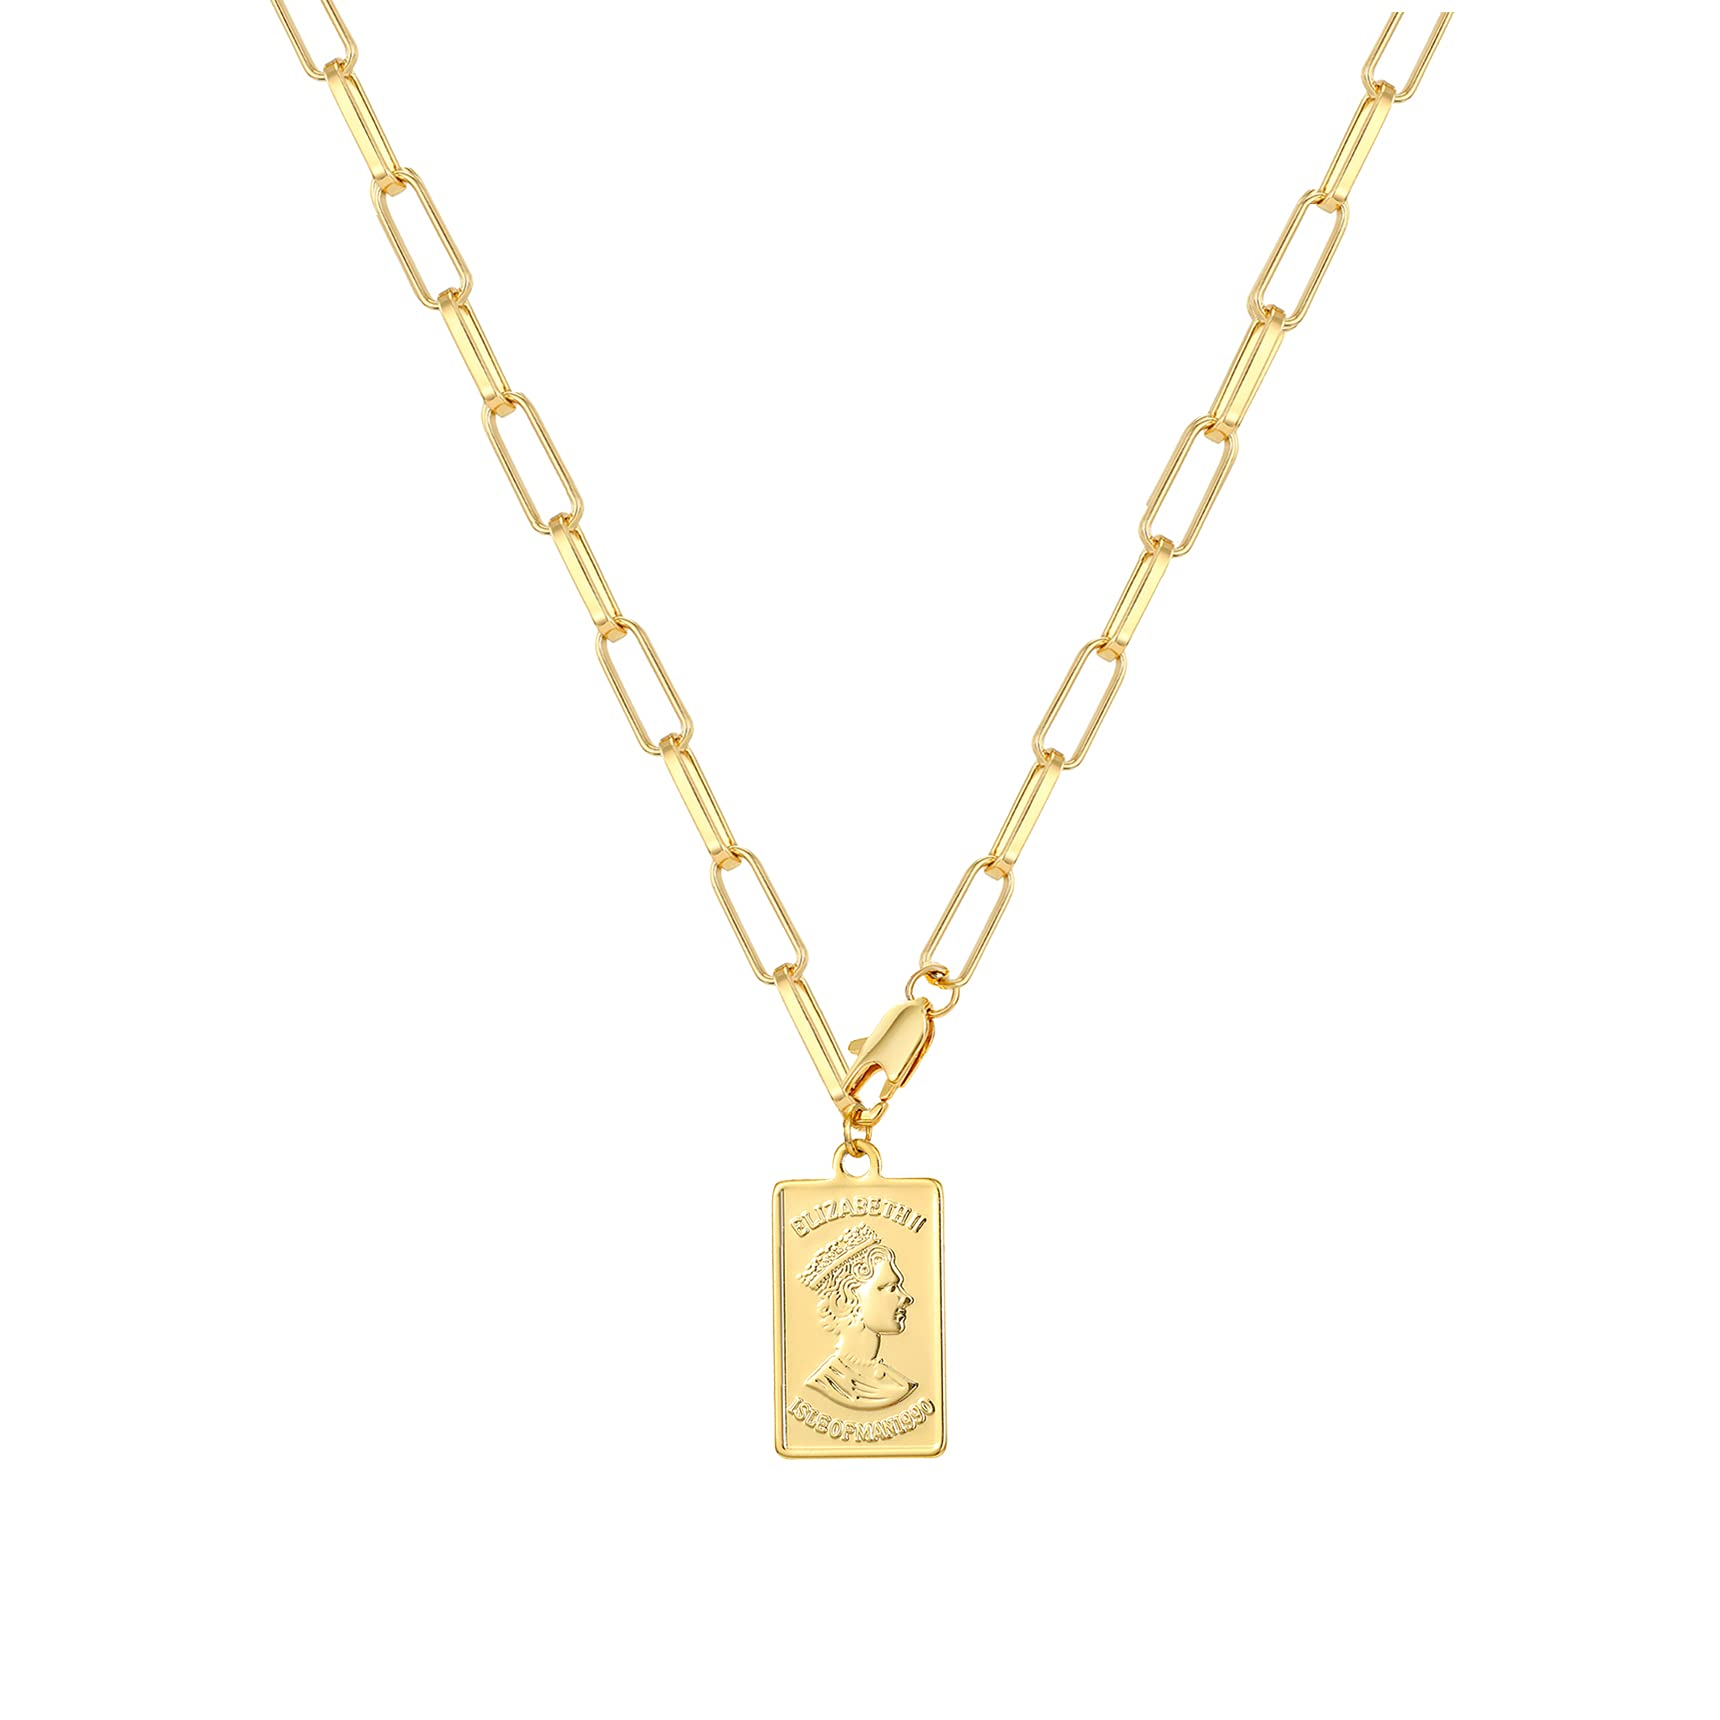 sovesi 14K Gold Plated Paperclip Chain Necklaces for Women Dainty Paperclip Link